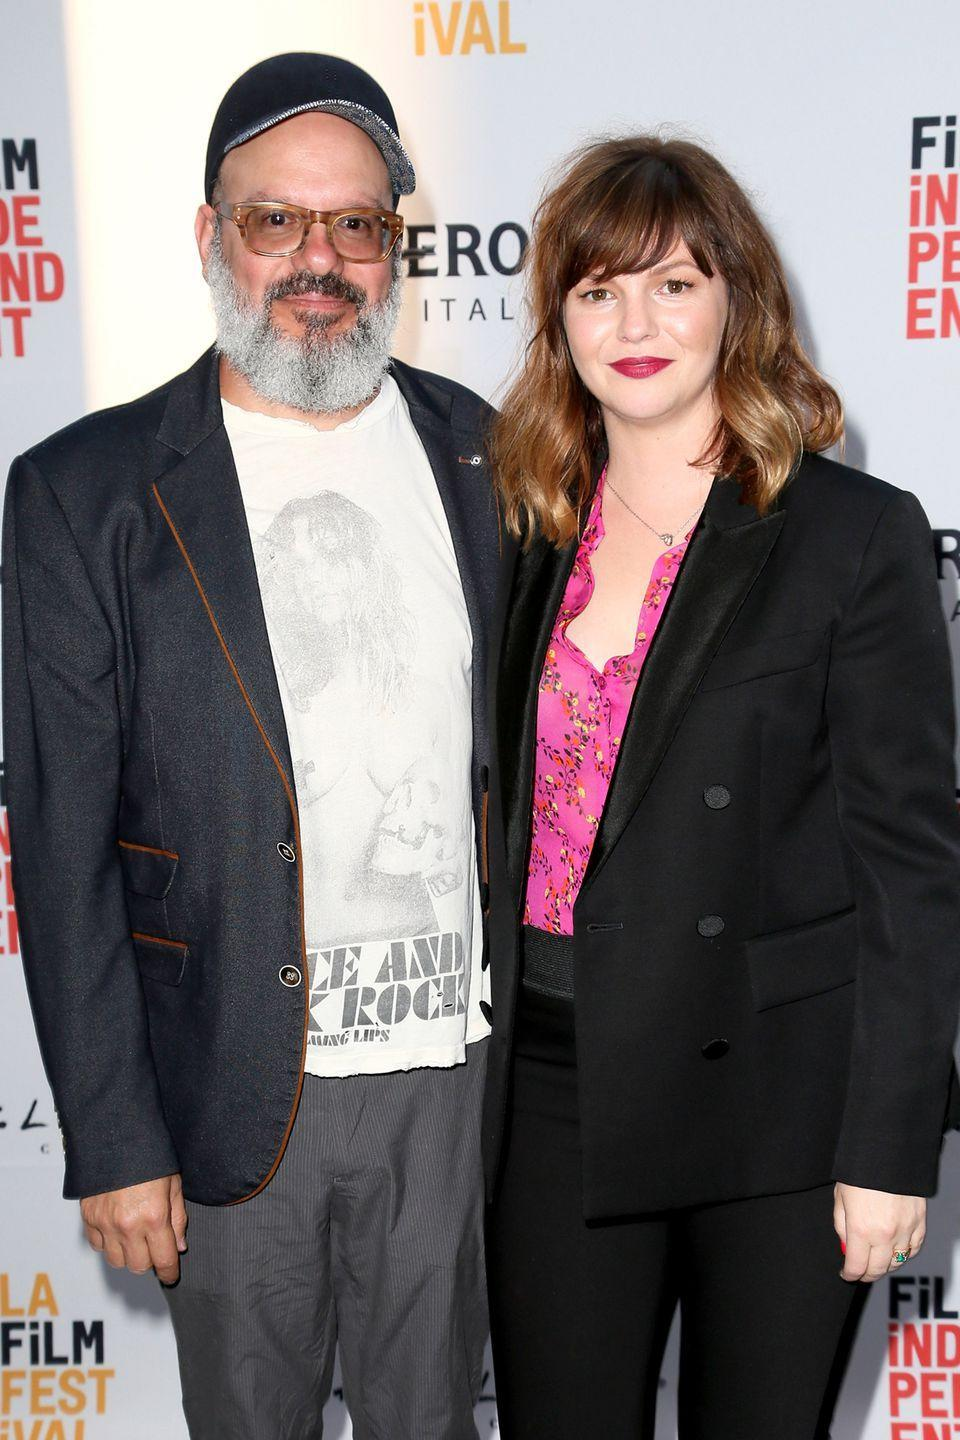 "<p>David Cross and Amber Tamblyn <a href=""https://www.huffingtonpost.com/2012/10/07/david-cross-amber-tamblyn-married_n_1946793.html"" rel=""nofollow noopener"" target=""_blank"" data-ylk=""slk:announced their engagement"" class=""link rapid-noclick-resp"">announced their engagement</a> in August of 2011, and tied the knot the following year. <em>The Sisterhood of the Traveling Pants</em> actress and her actor/comedian husband welcomed daughter Marlow Alice Cross in 2017.</p>"